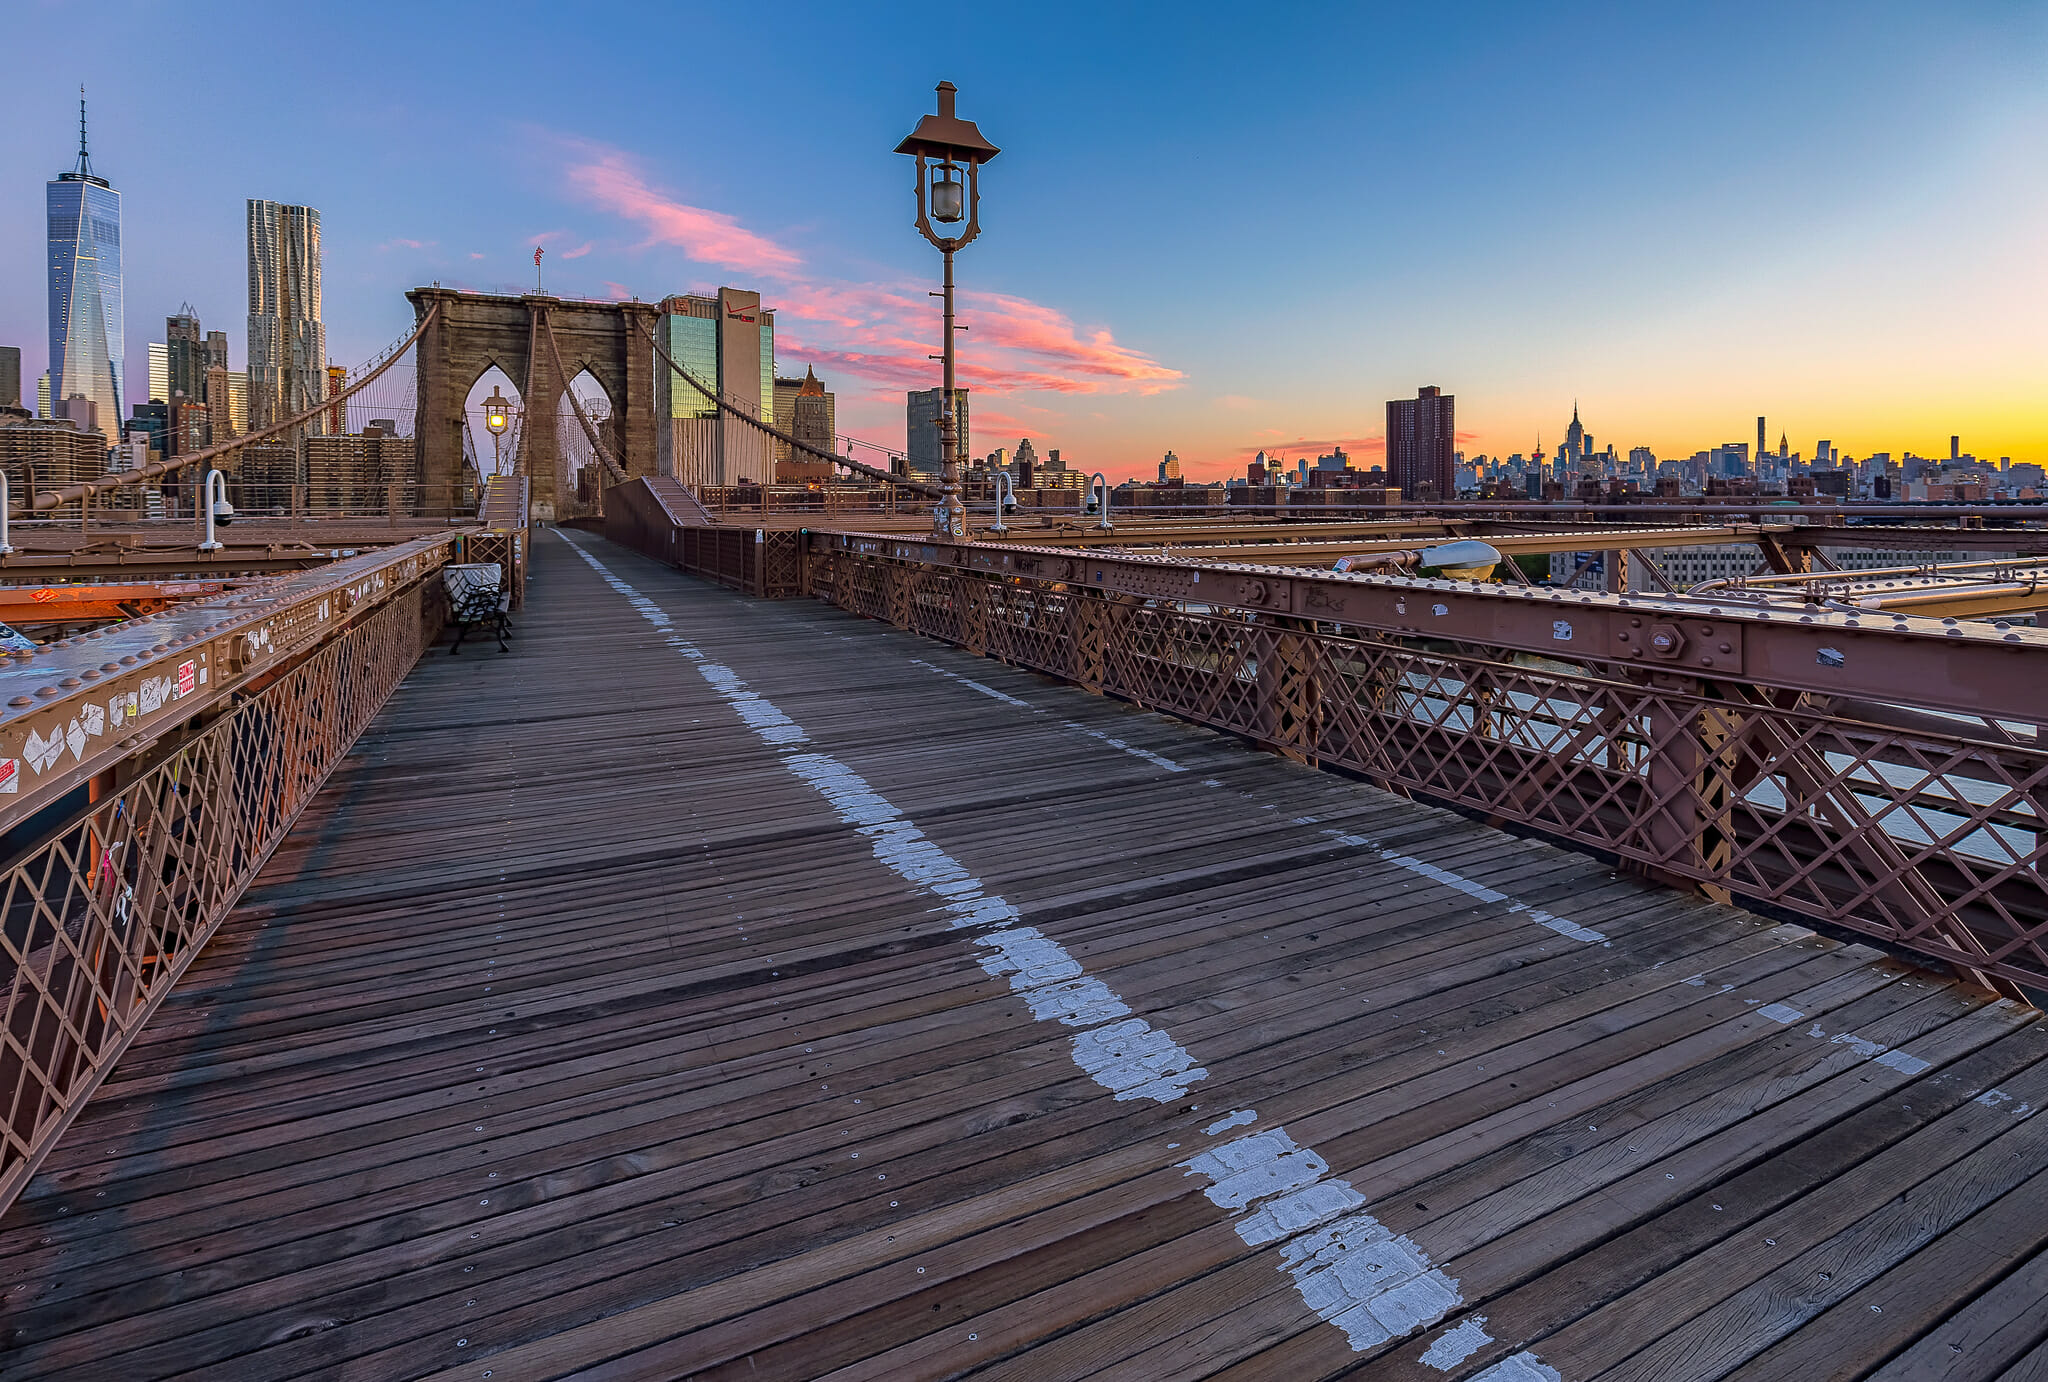 brooklyn bridge shoot: 10 Fun and Frugal Things To Do in Manhattan